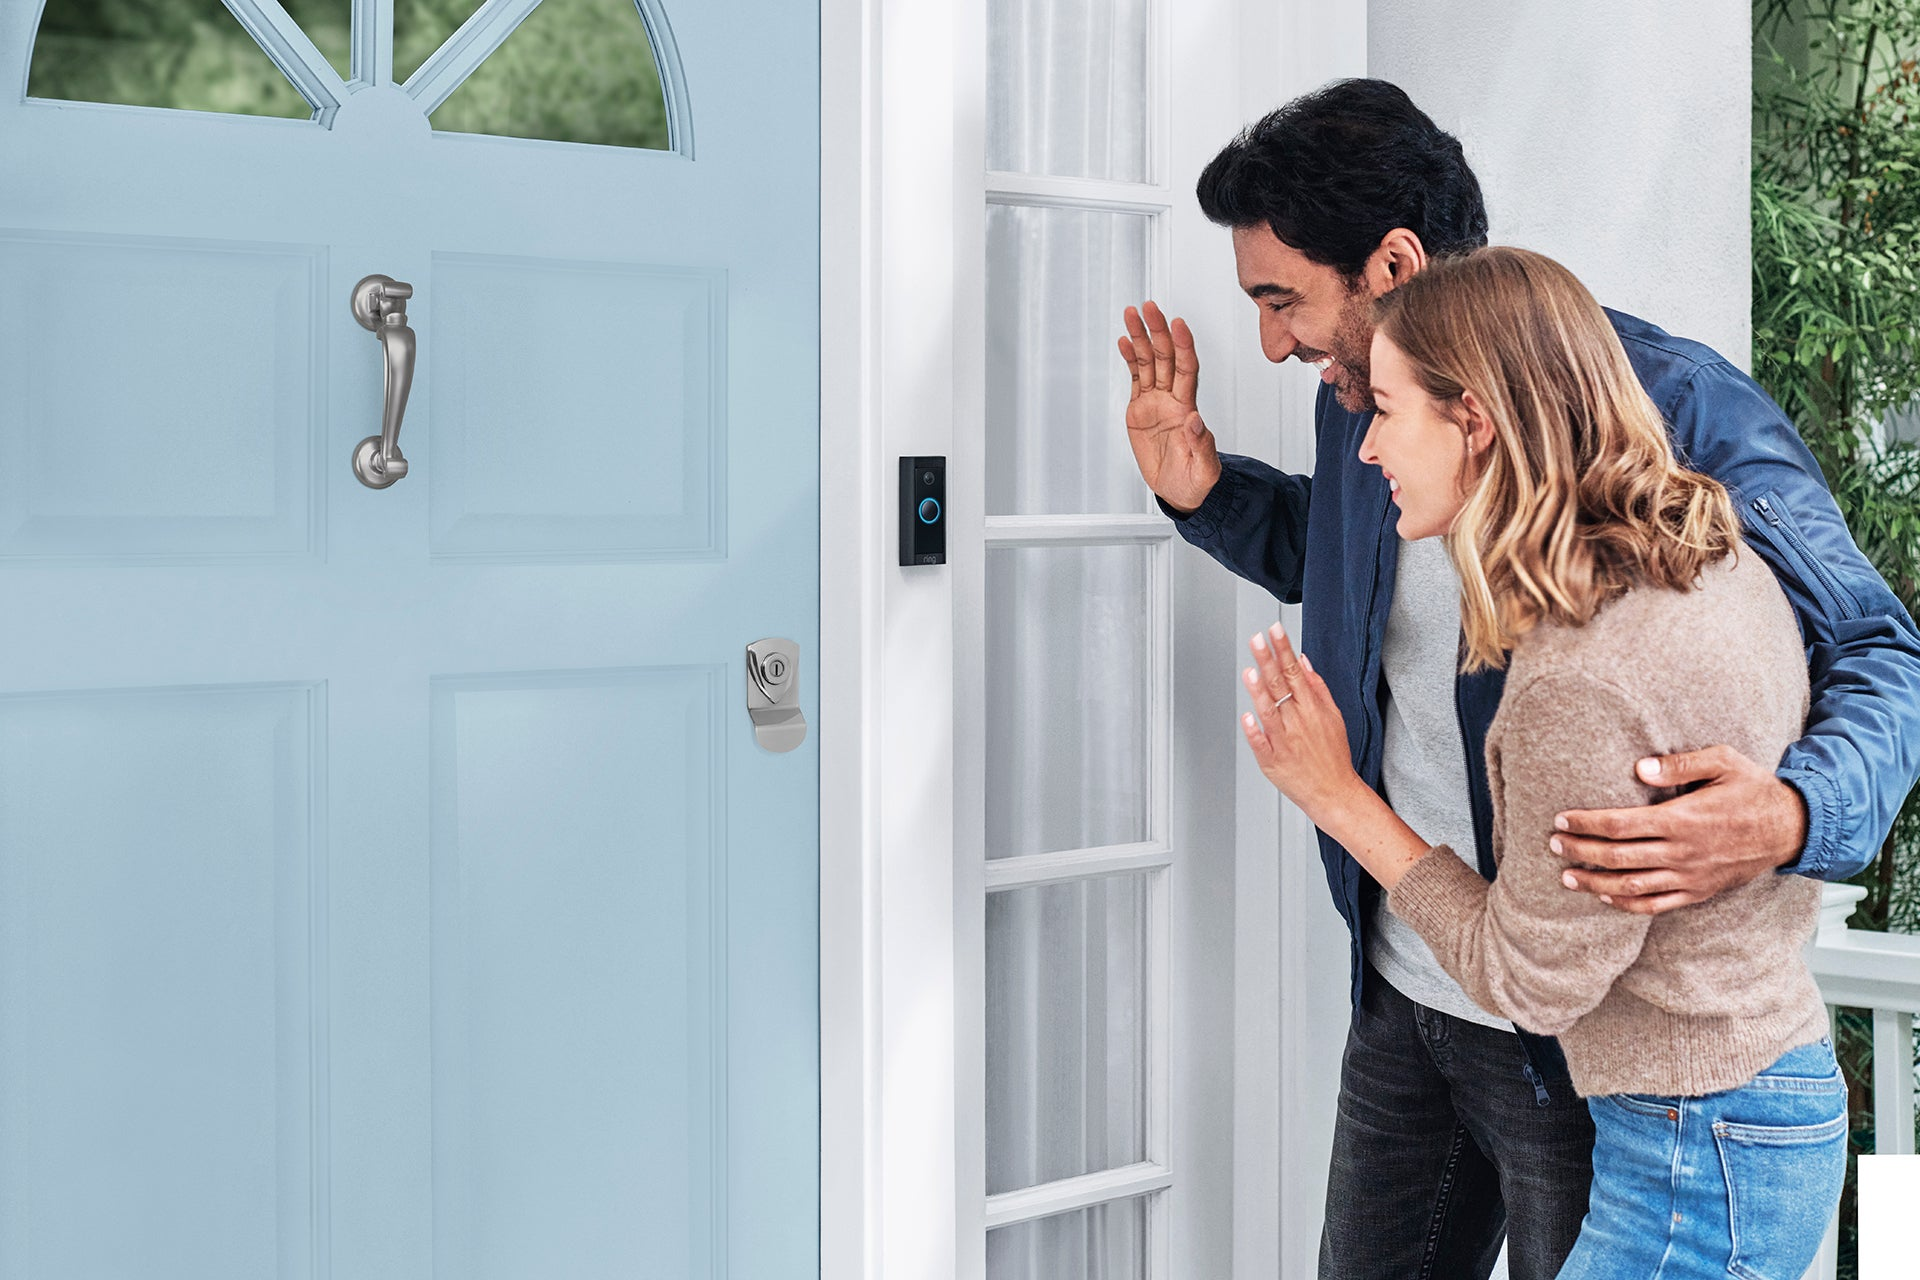 Ring Video Doorbell introducing automated responses for your door